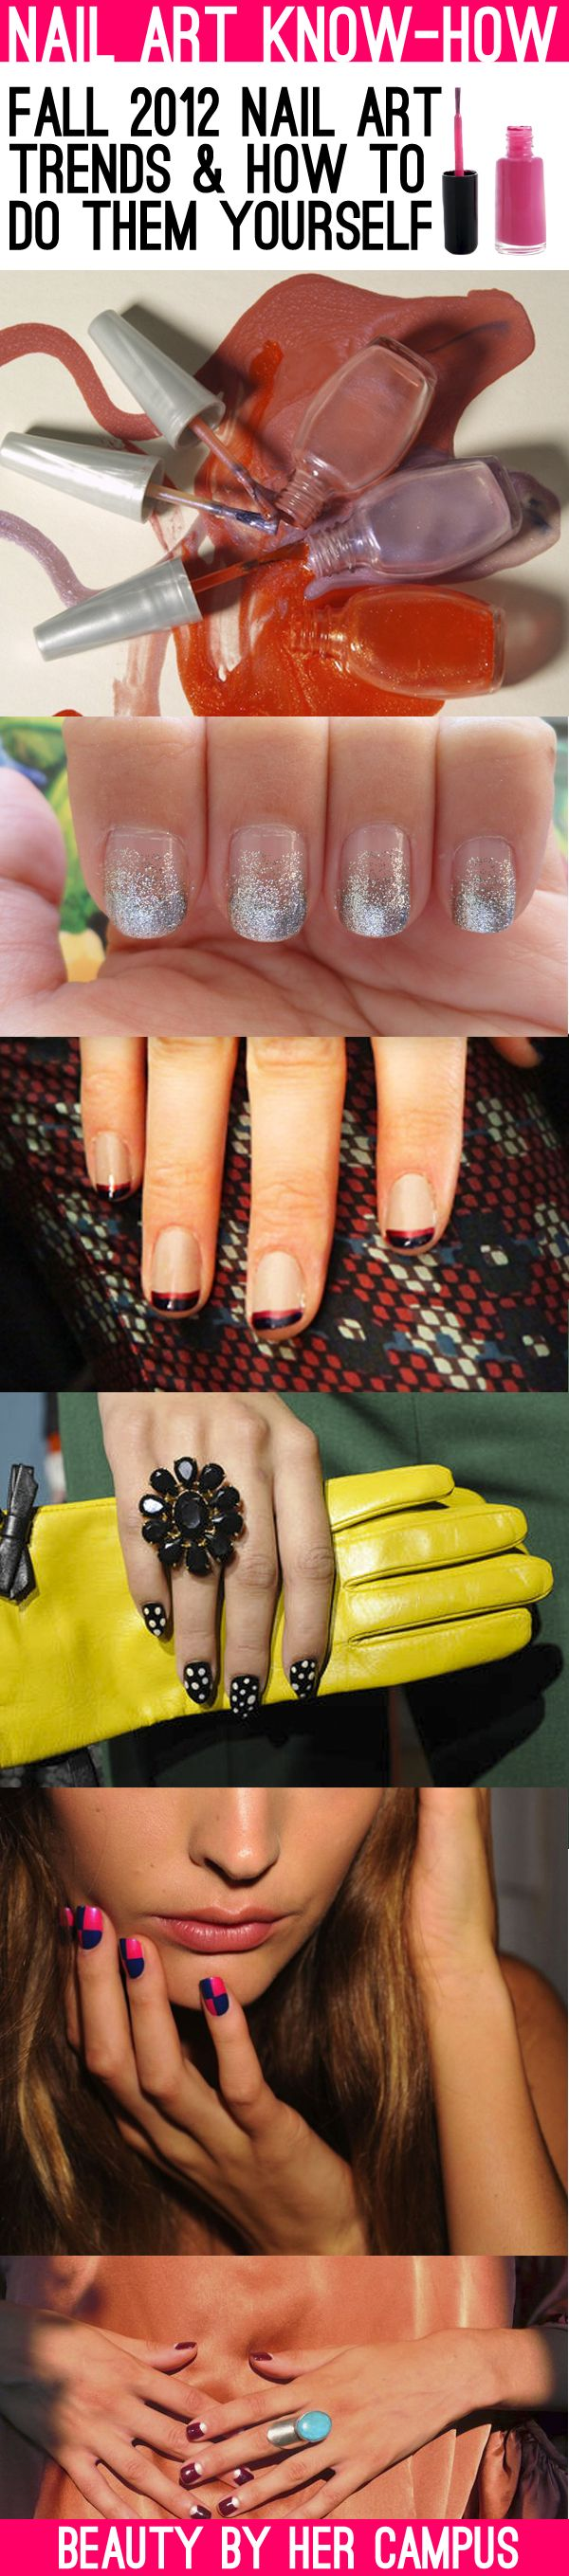 Nail Art Know-How: Fall 2012 Nail Art Trends & How To Do Them Yourself